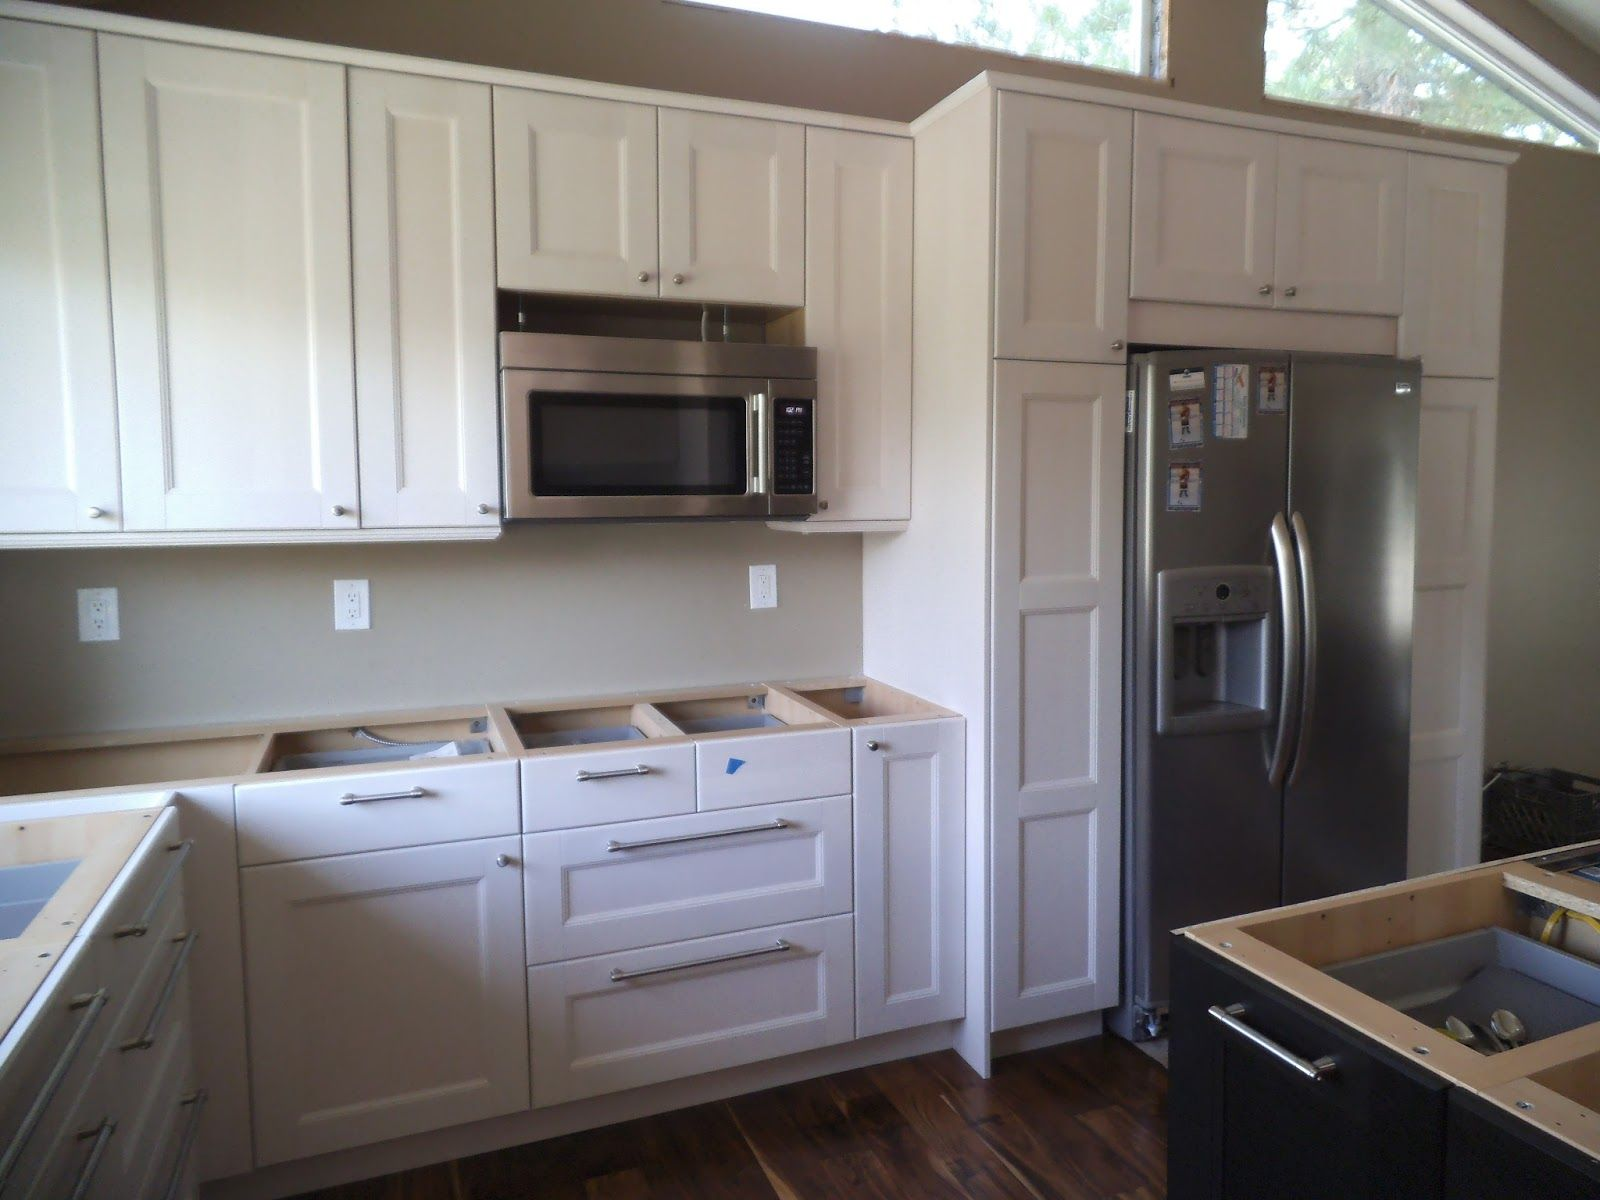 Stacie S Stuff My 2 Cents Worth Ikea Kitchen Cabinets White Ikea Kitchen New Kitchen Cabinets